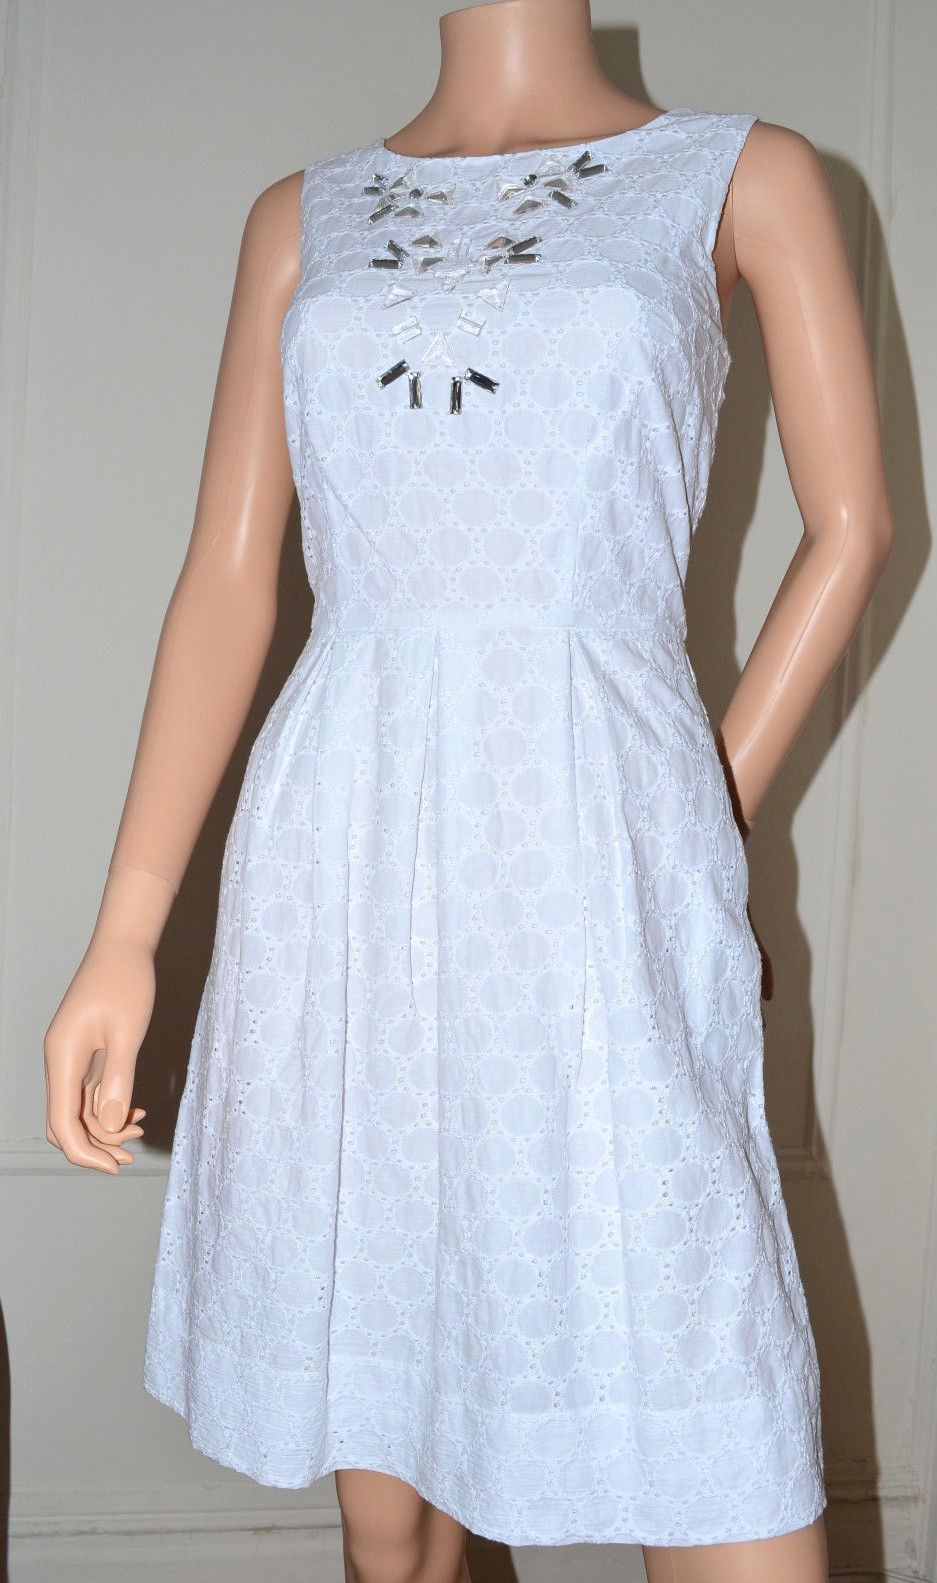 Miss Sixty M60 $128 White Cotton Eyelet Embroidered Dress size 6 Medium M NEW